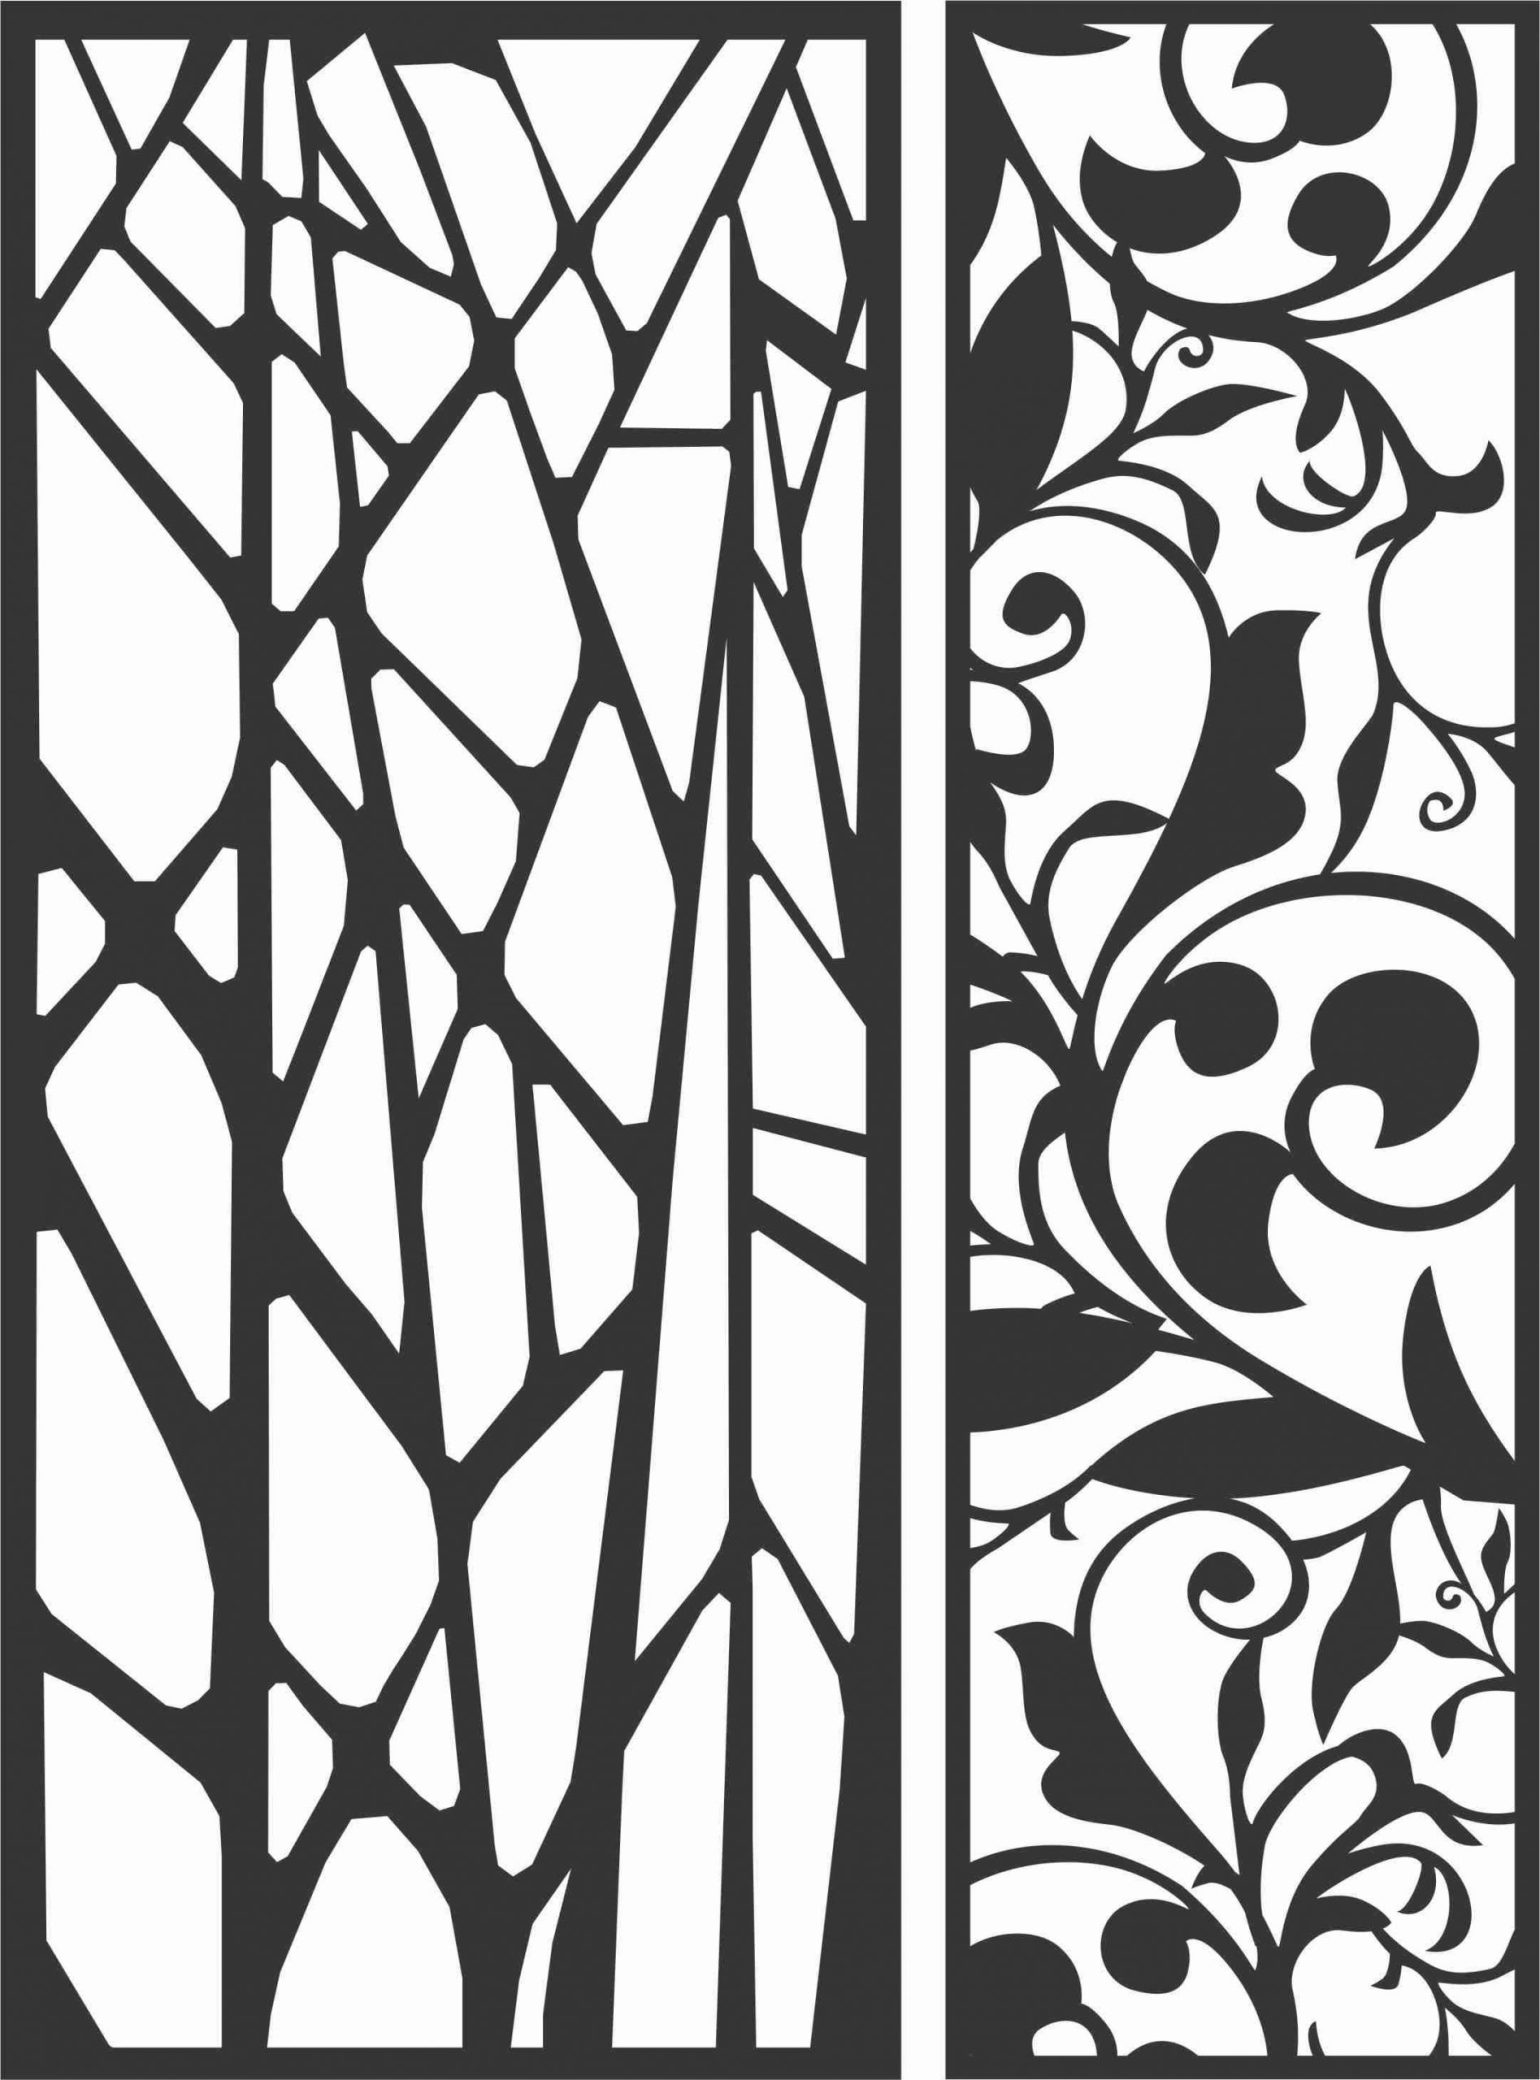 Decorative Screen Patterns For Laser Cutting 63 Free DXF File